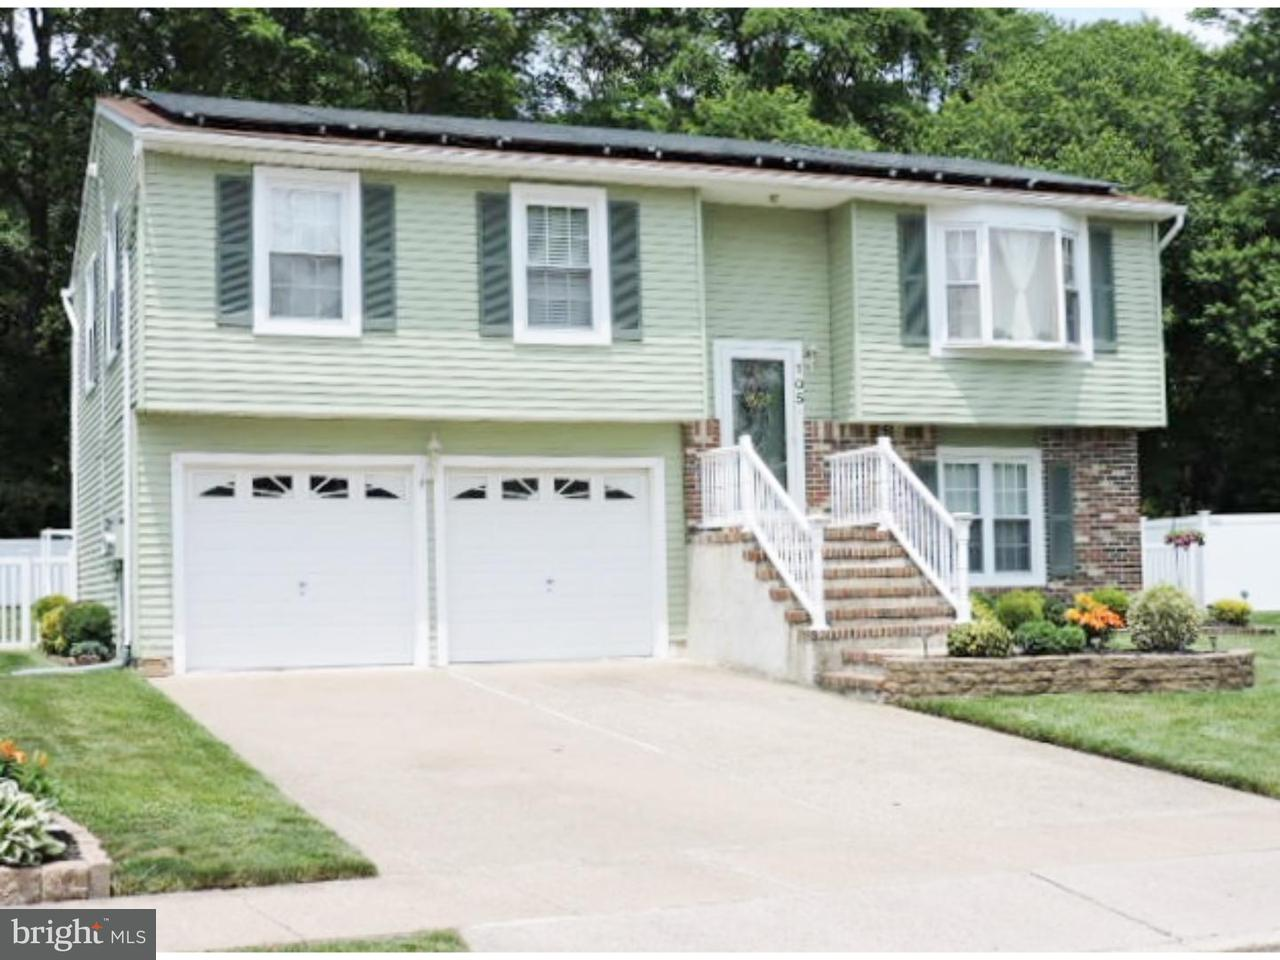 Single Family Home for Rent at 105 SHERWOOD Lane Westampton, New Jersey 08060 United States